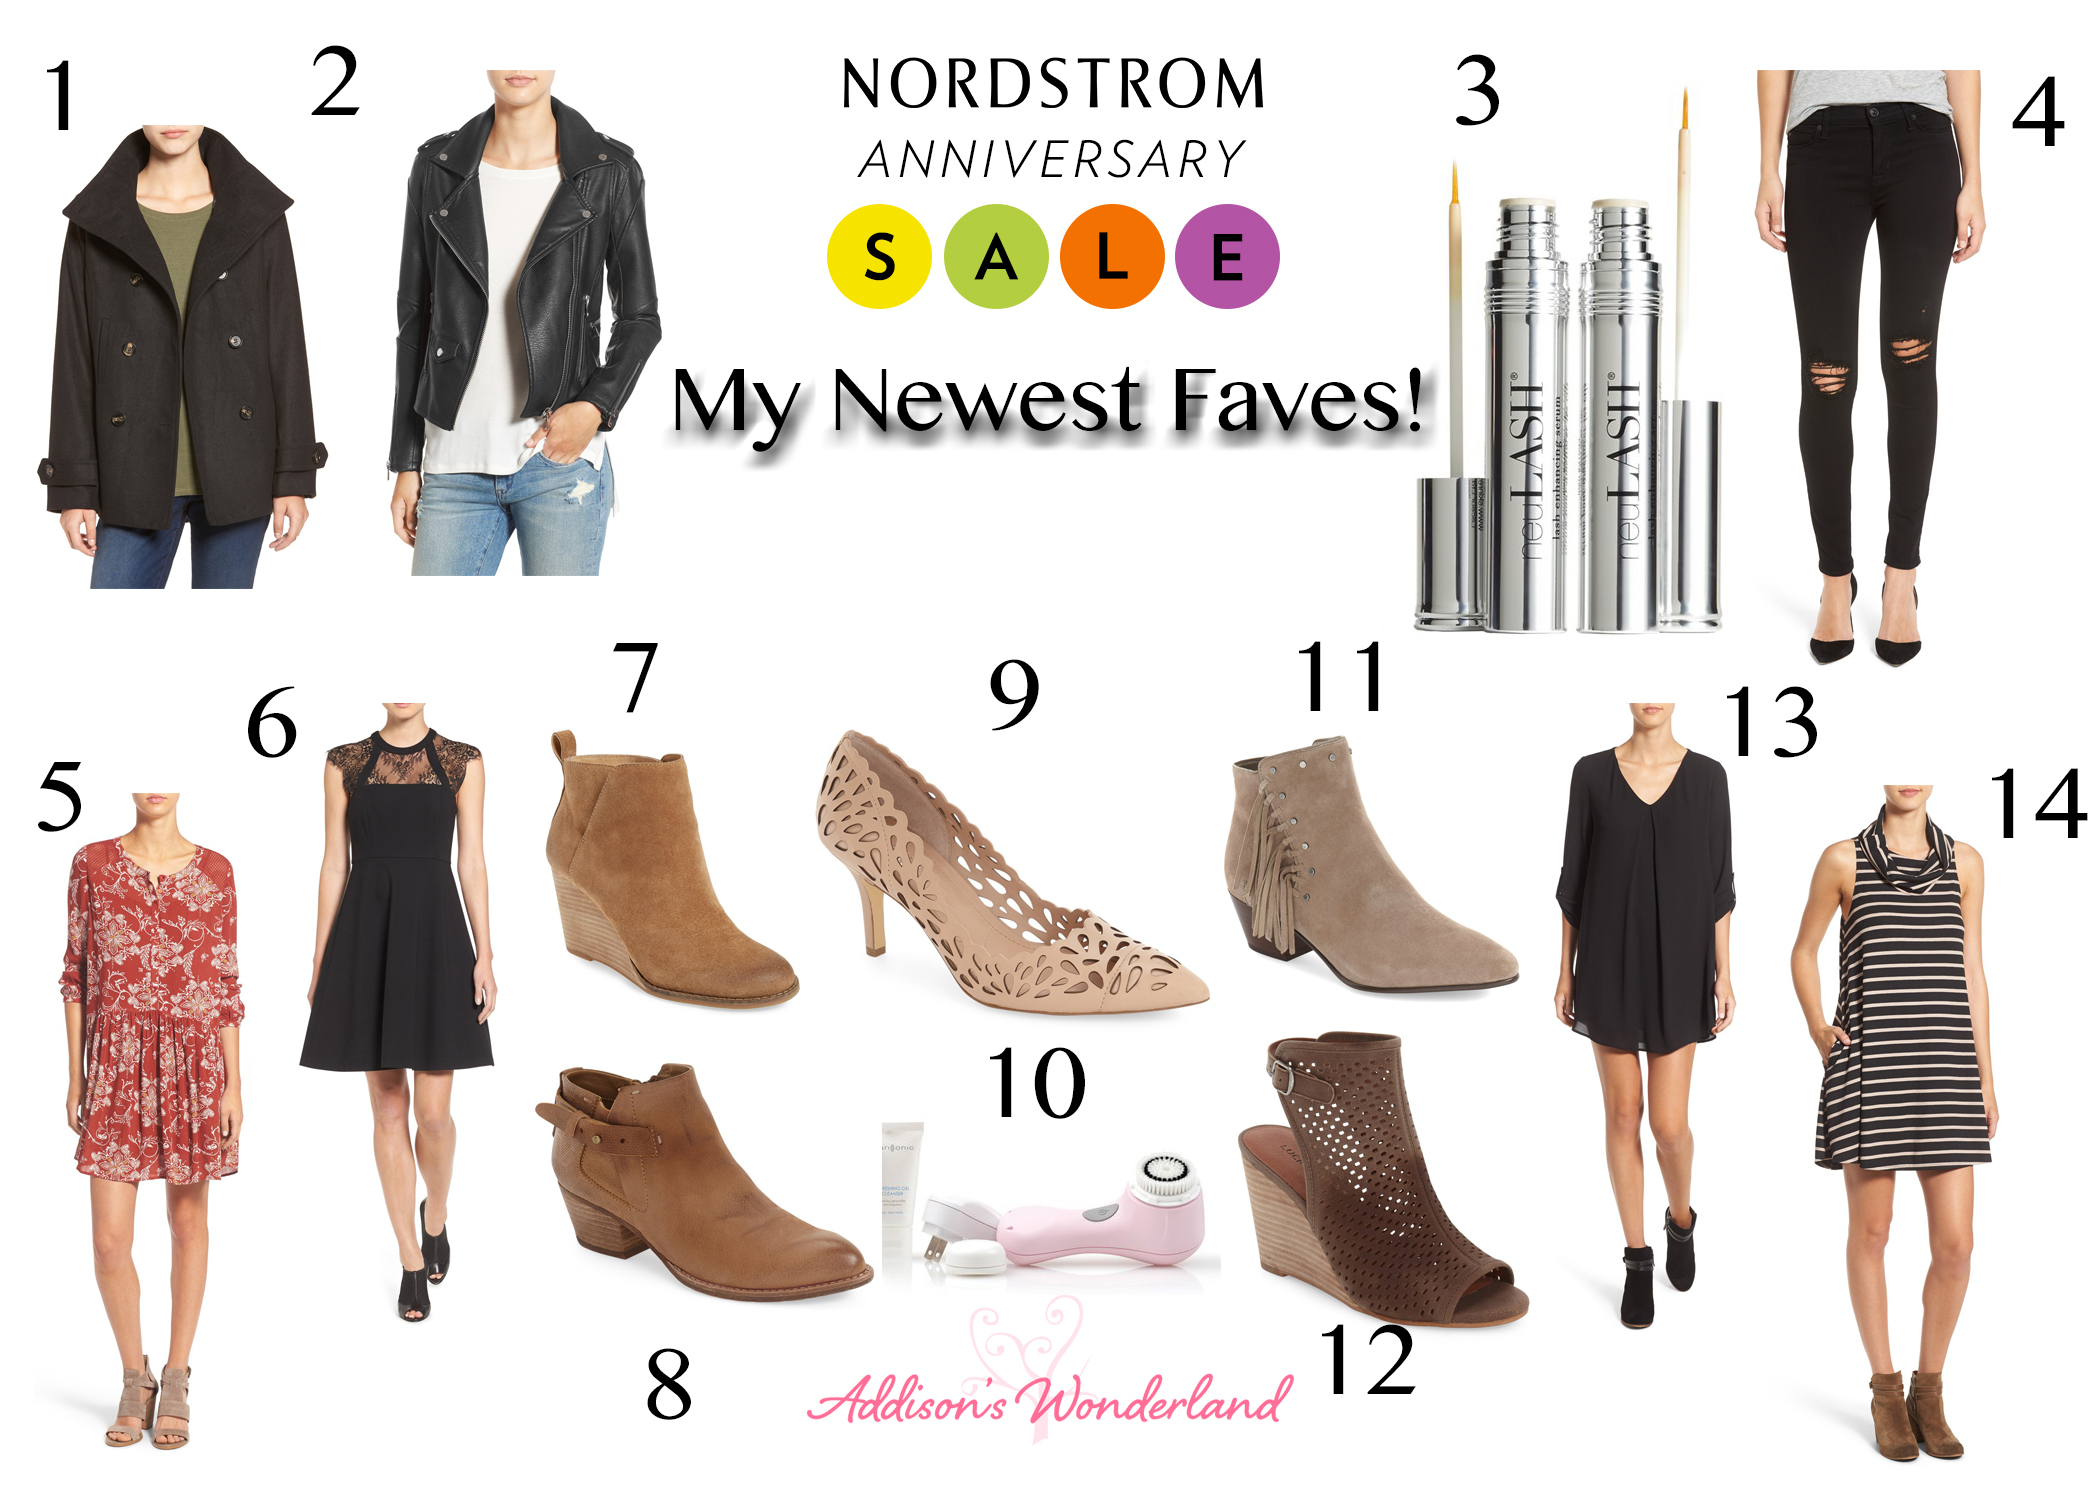 Nordstrom Anniversary Sale New Faves